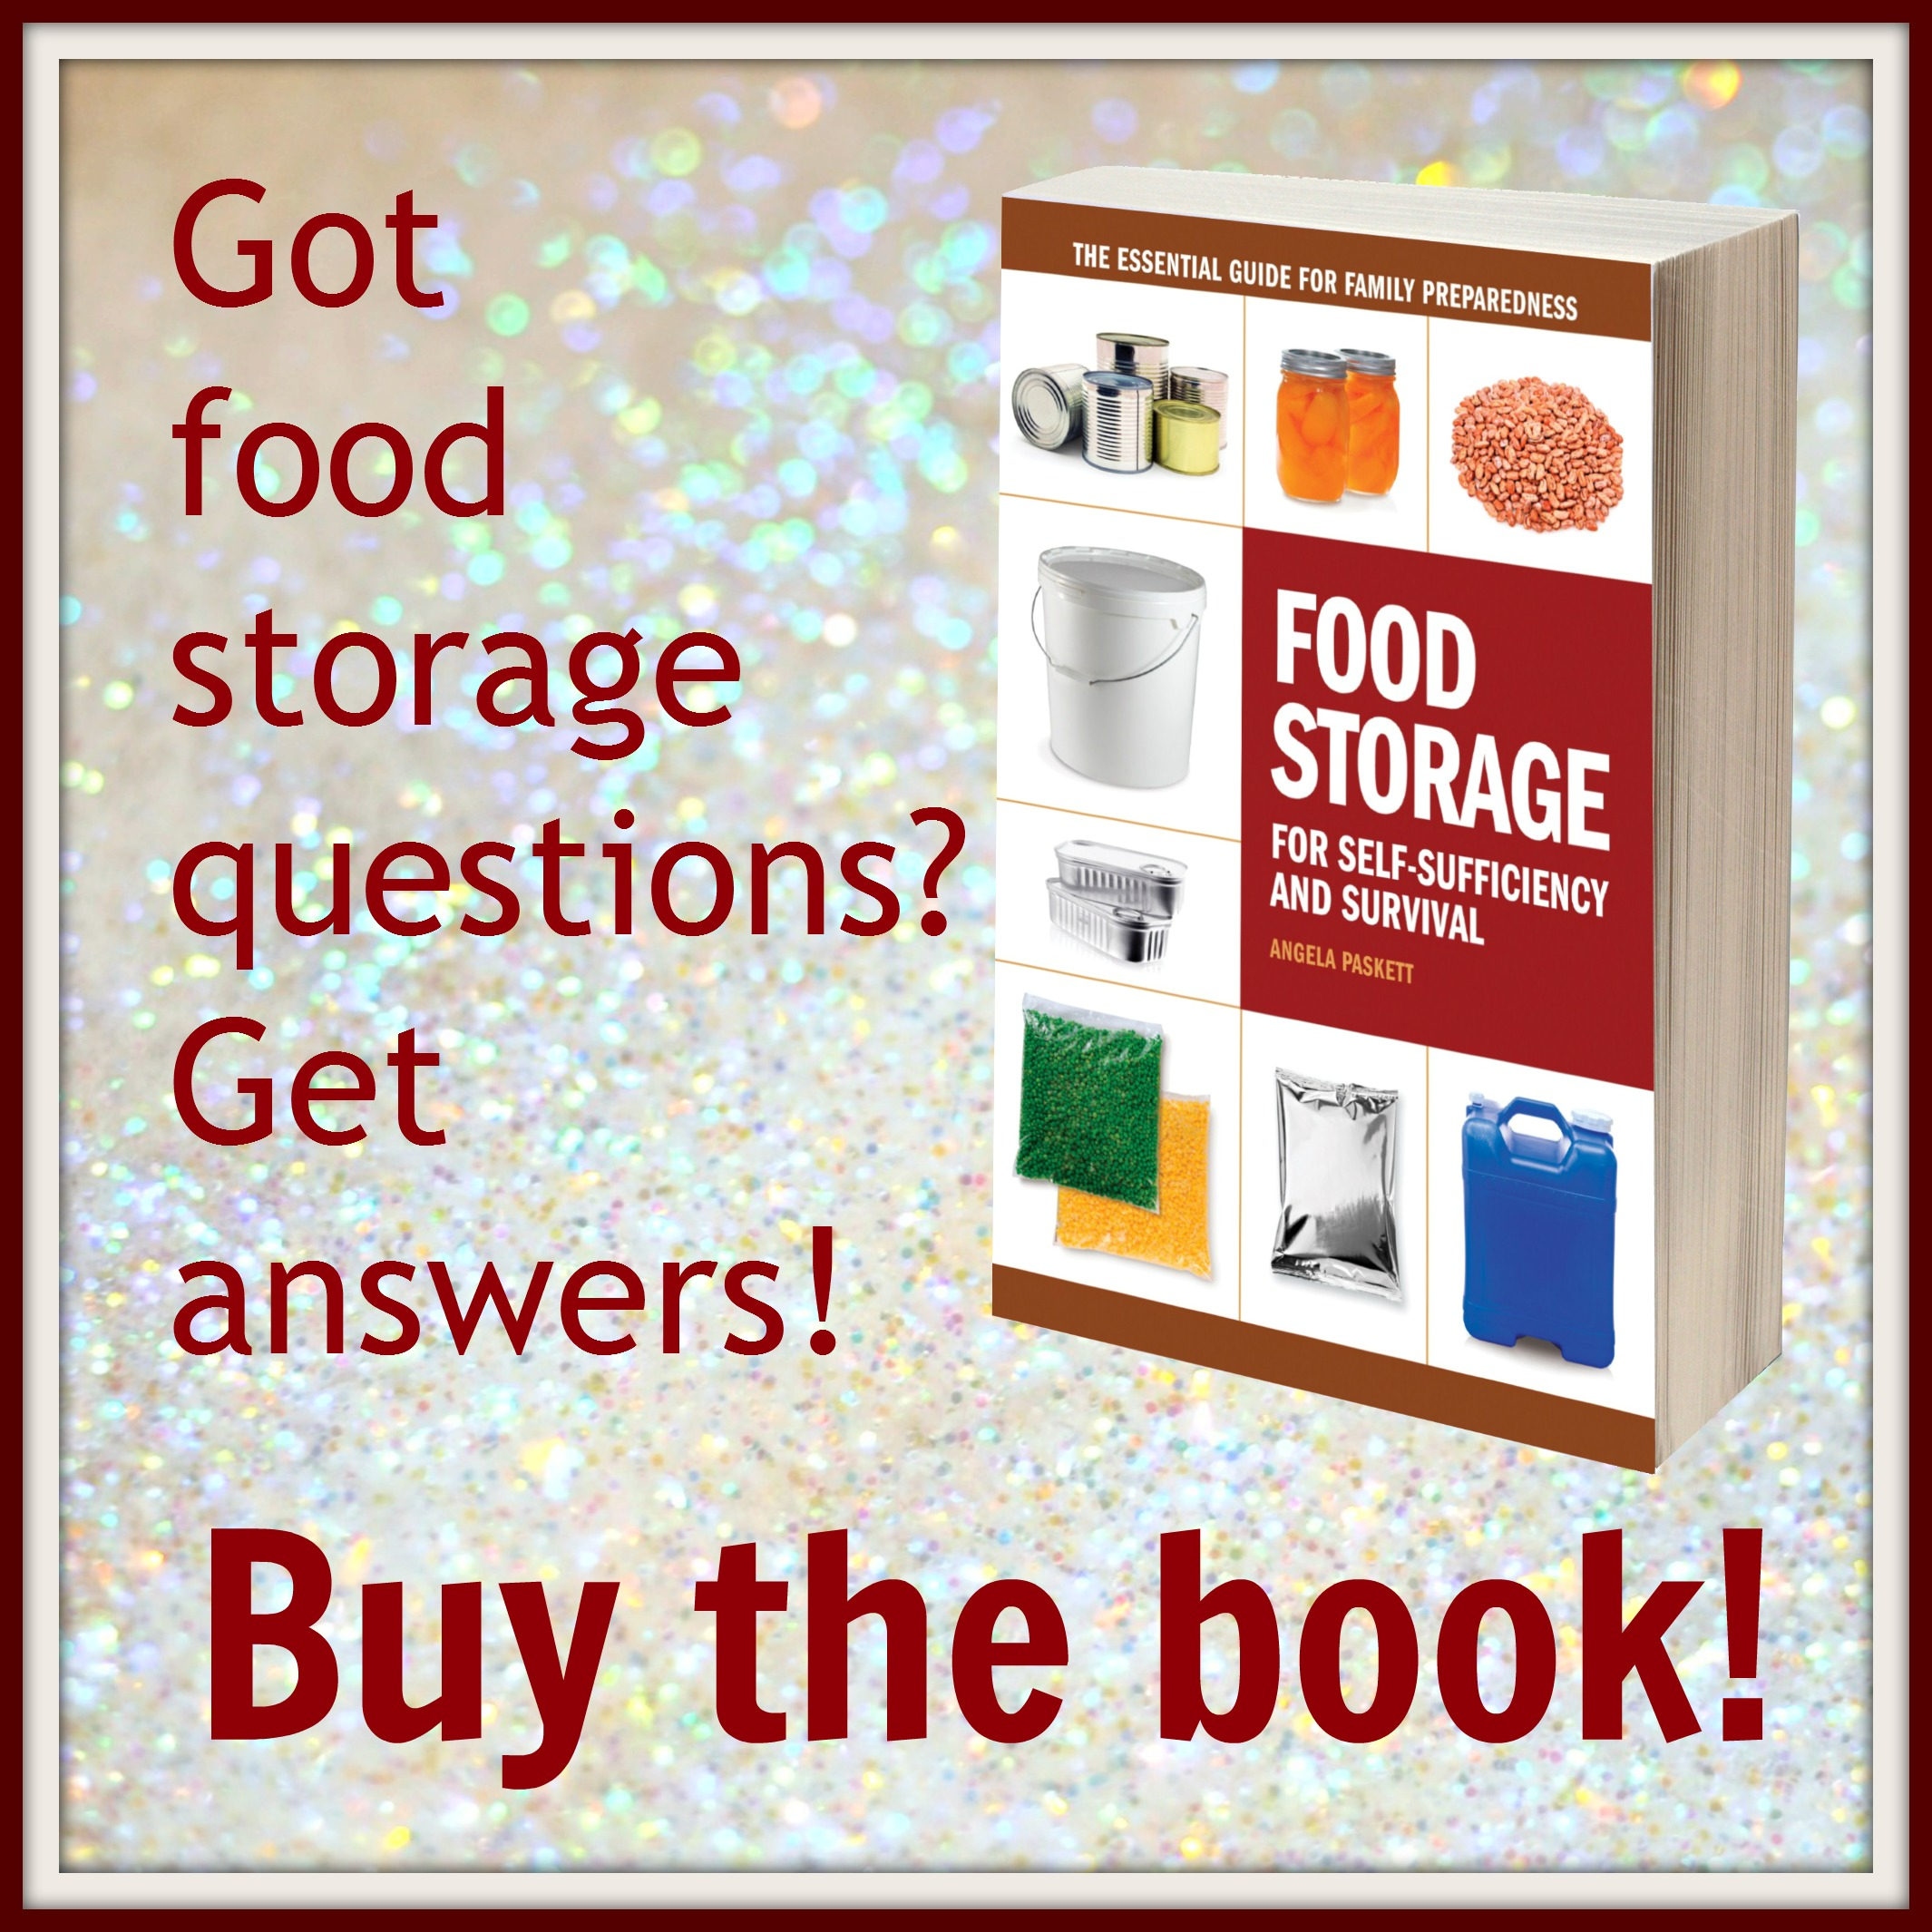 Food Storage and Survival: Sharing the peace of preparedness from our family to yours